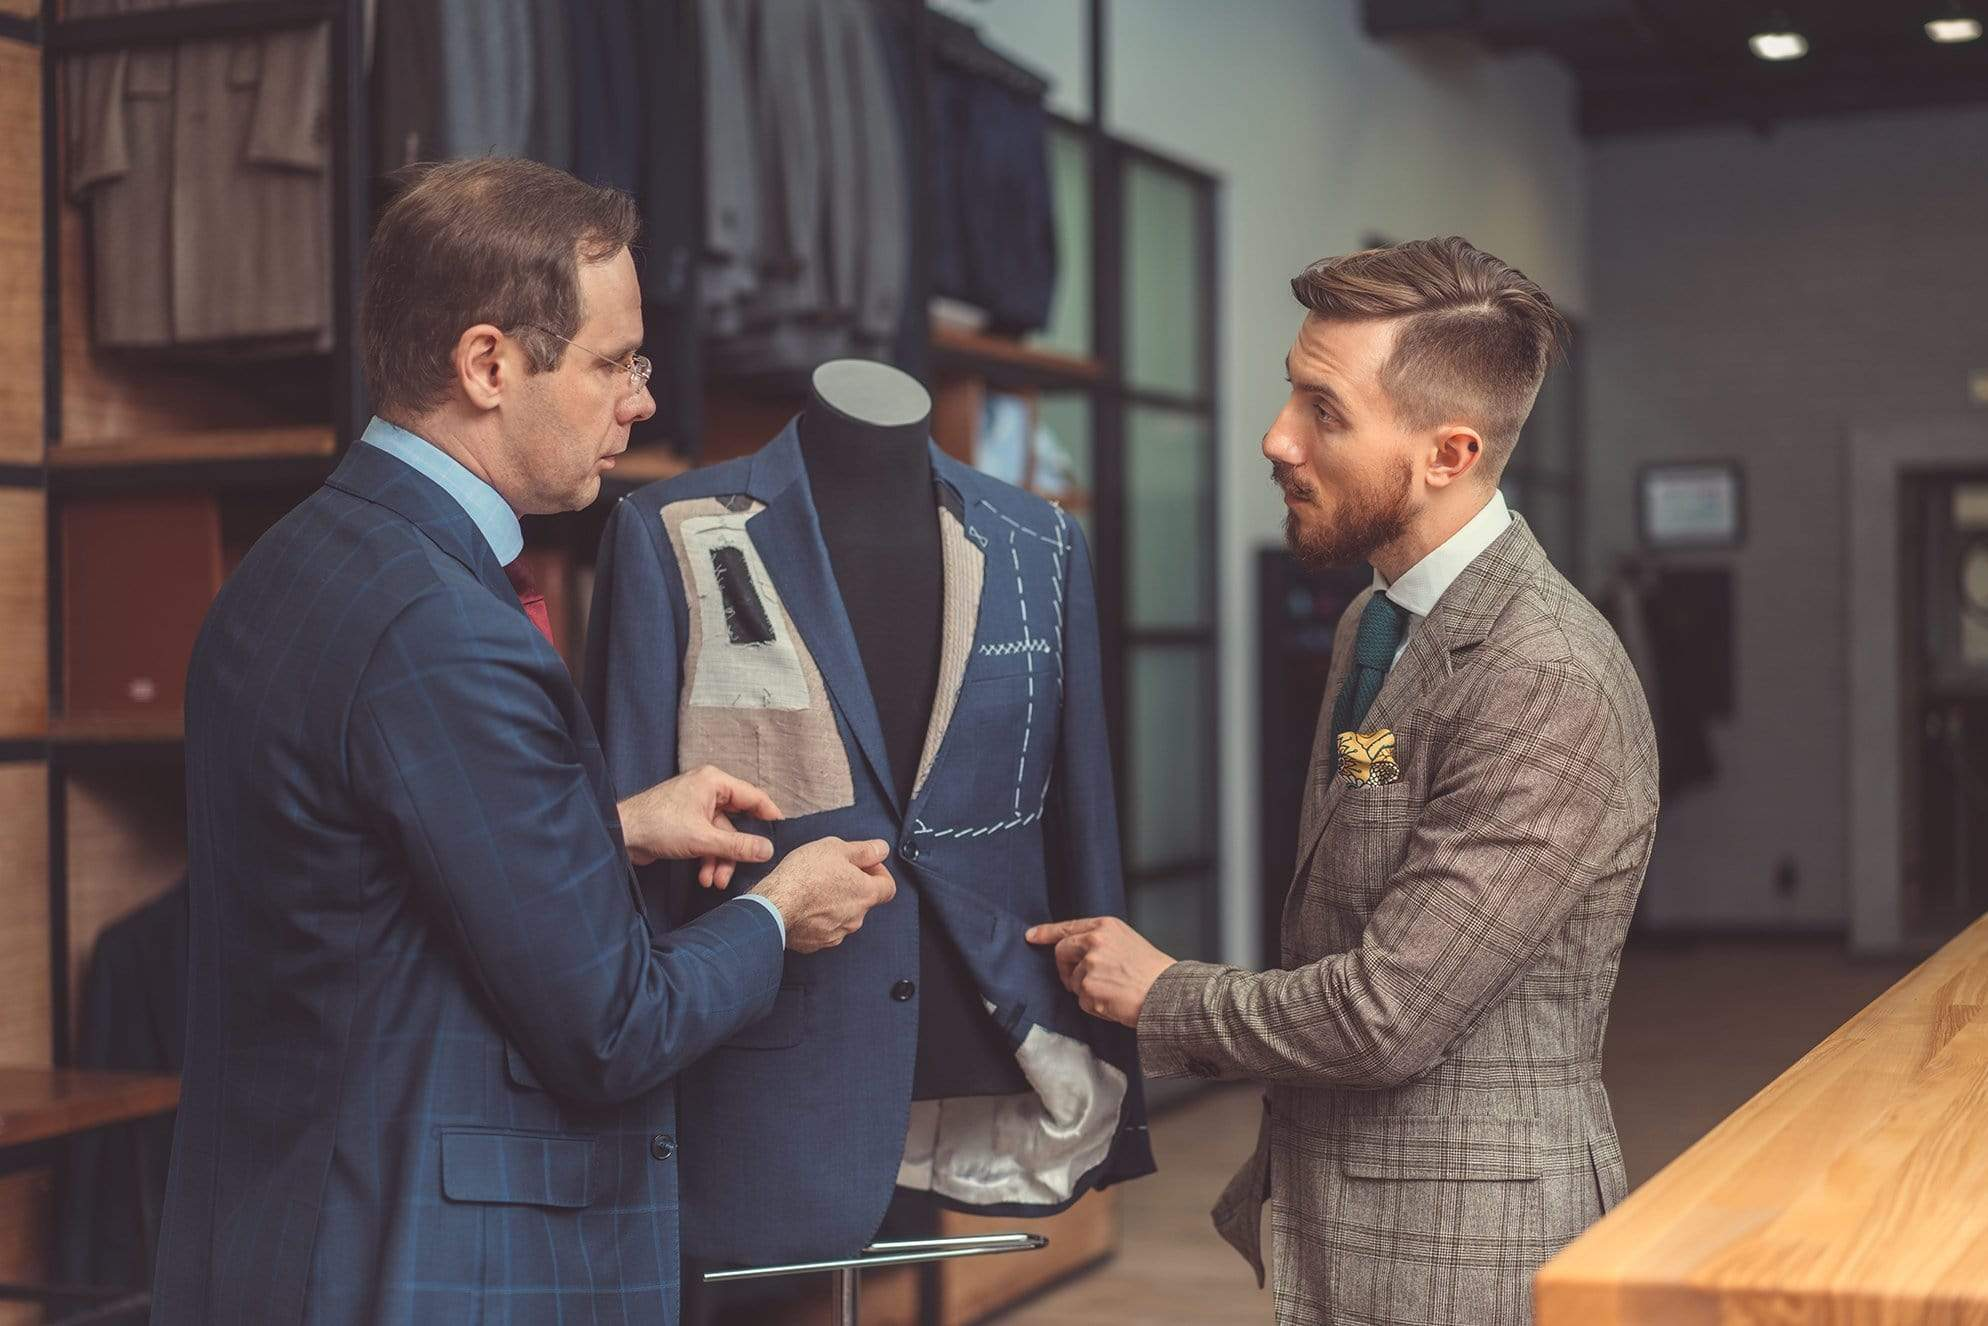 The Ultimate Guide; Bespoke vs. Made to Measure